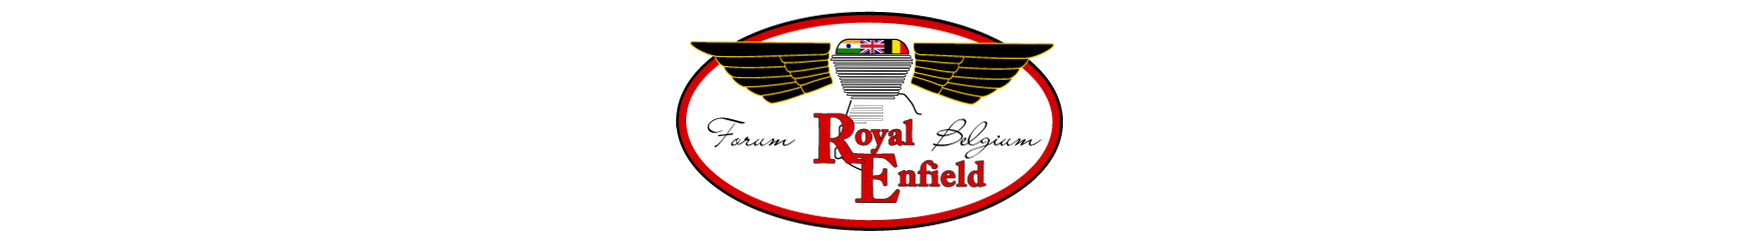 Royal Enfield Forum - Drive And Enjoy - Belgisch Forum